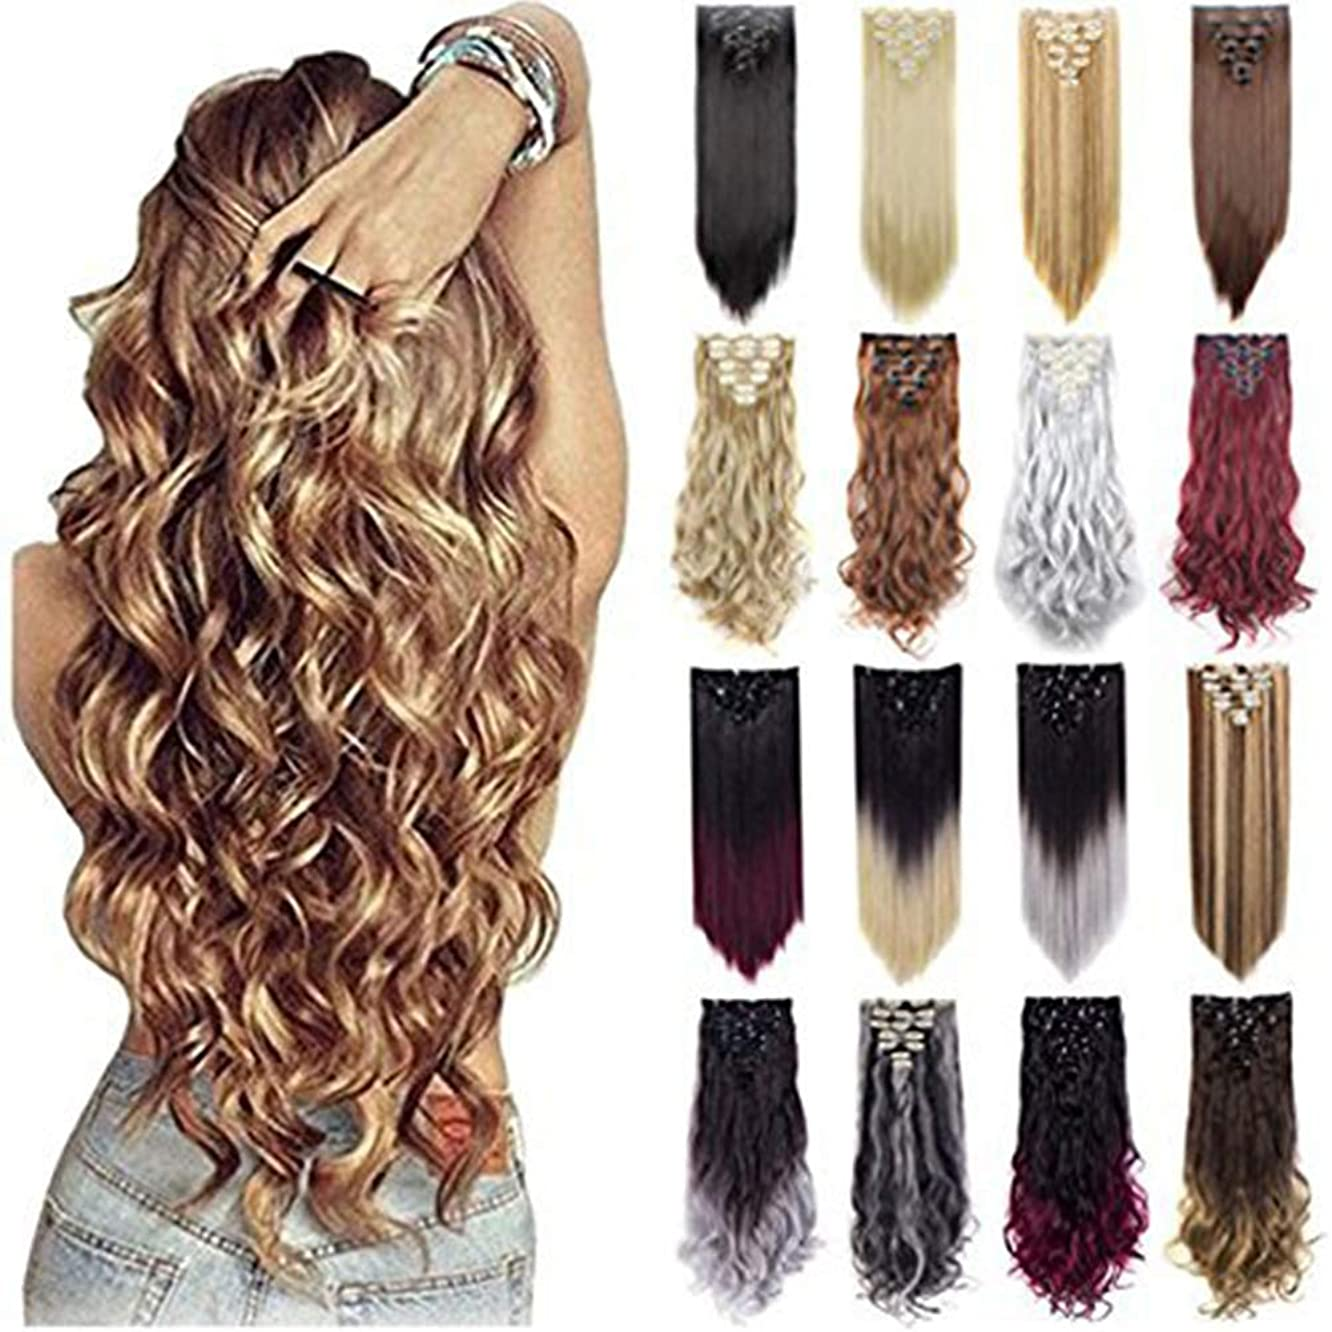 Grade 7A 160g 23-24 Inch Real Thick Double Weft Clip In Hair Extensions